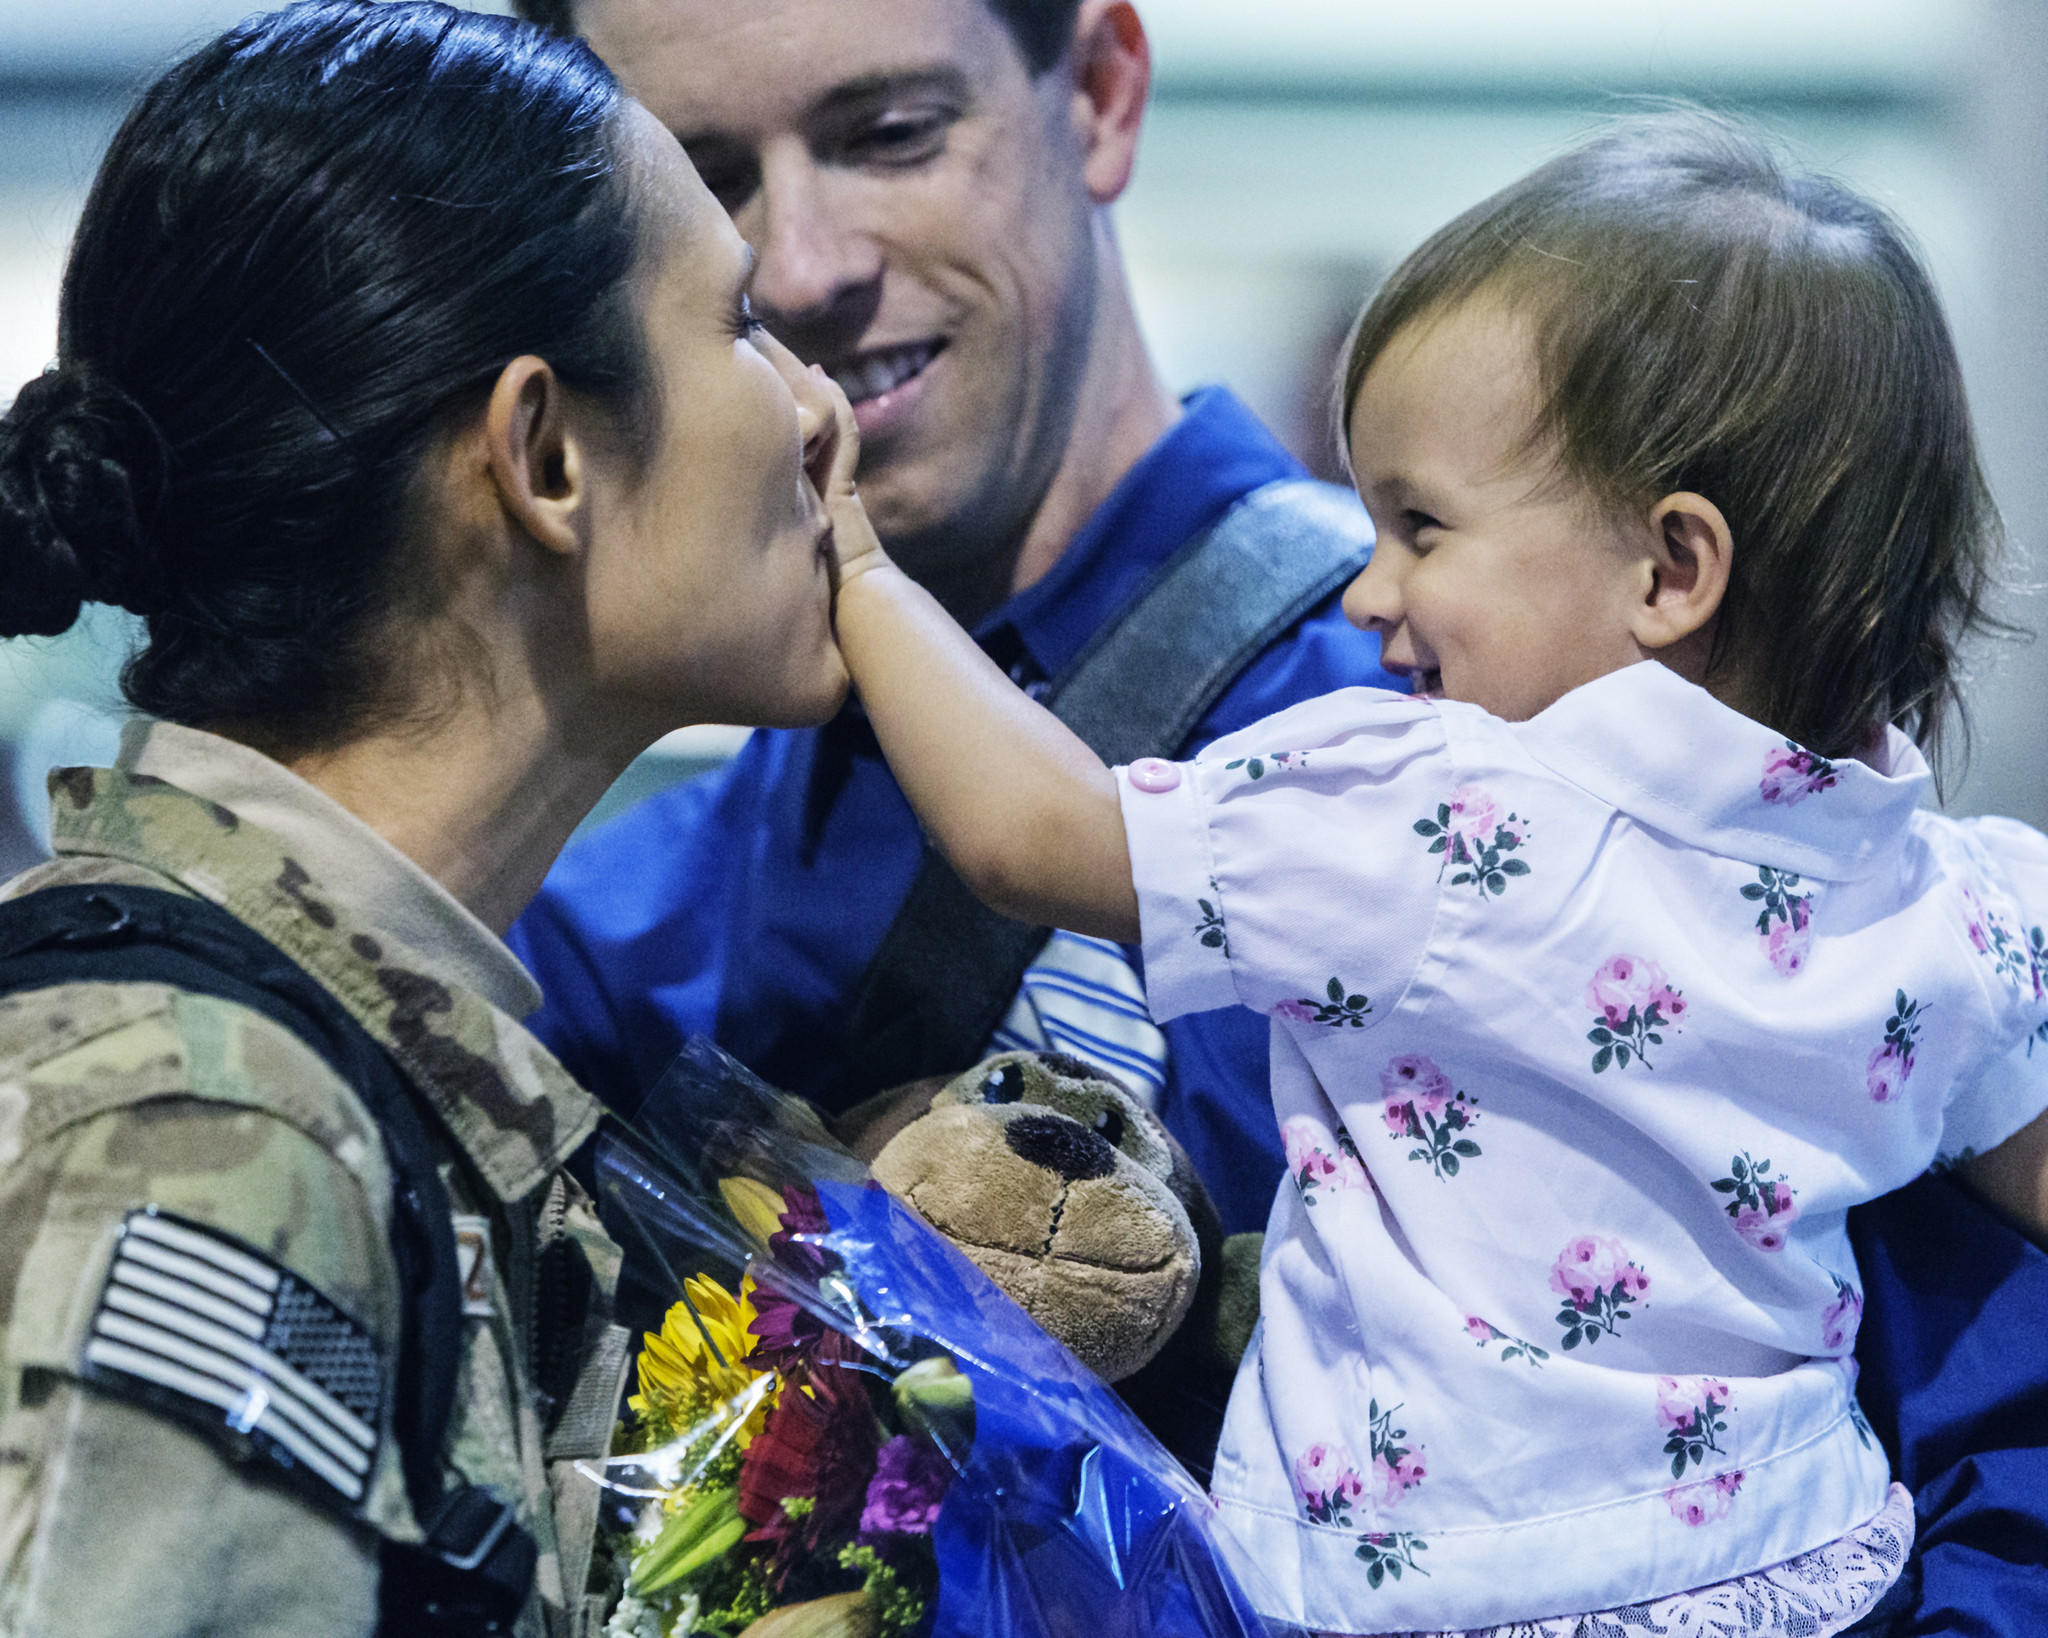 Captain Star Lopez returns home after deployment to Afghanistan.